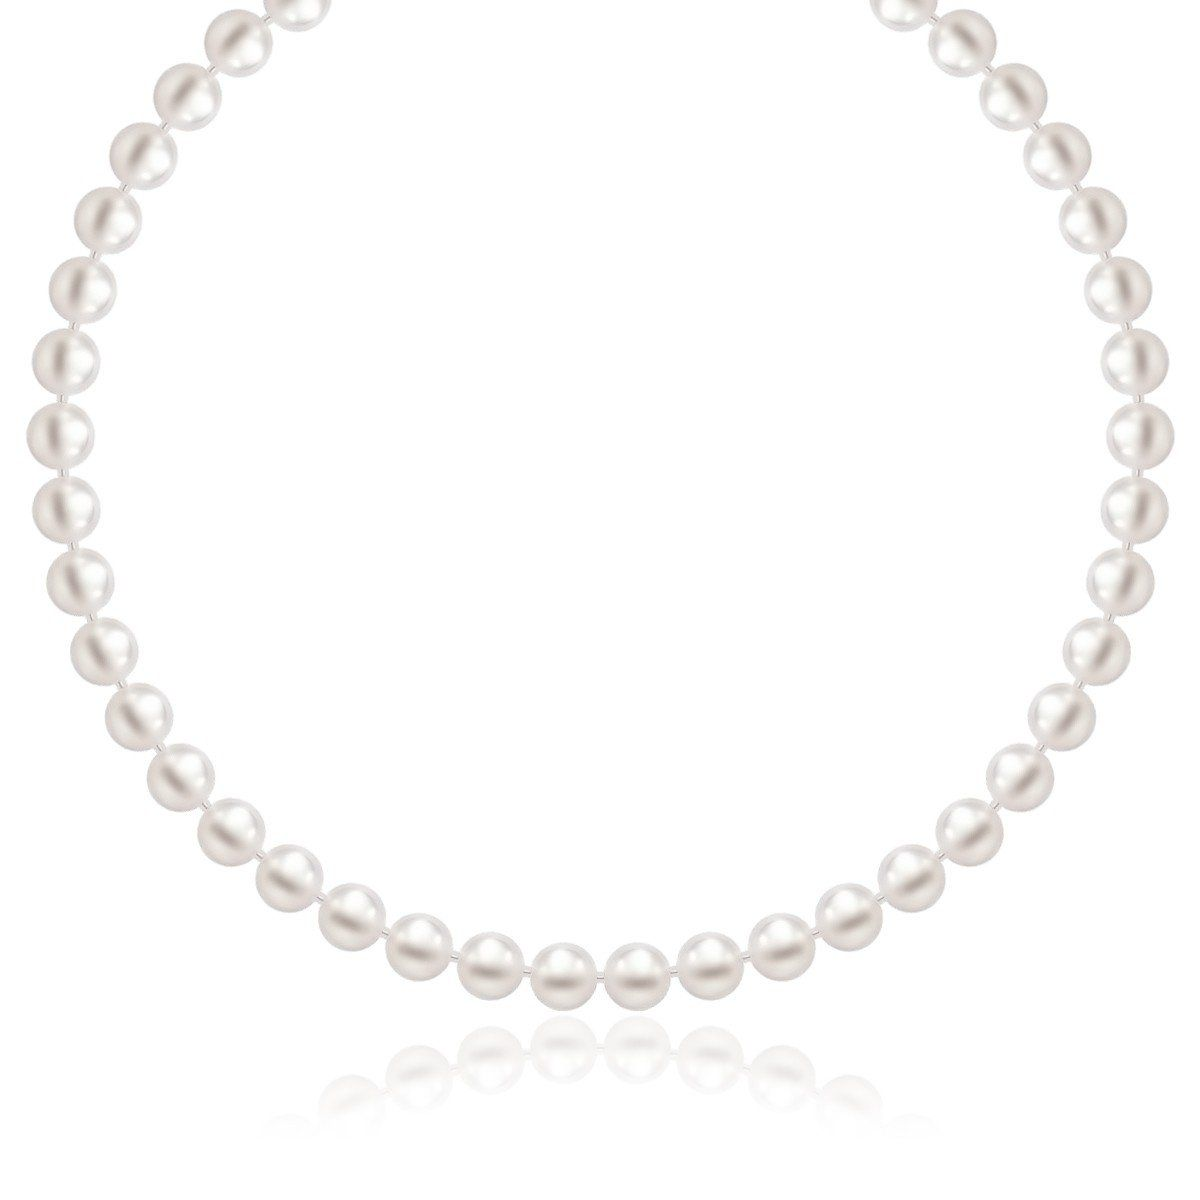 """14K White Gold Necklace with White Freshwater Cultured Pearls (6.0mm to 6.5mm). Showcasing a strand of white cultured freshwater pearls, this necklace radiates understated elegance. Truly a beautiful piece available in sizes 16"""", 18"""", and 20"""" and secured with a lovely 14K white gold clasp. $399.99 #hiMom"""